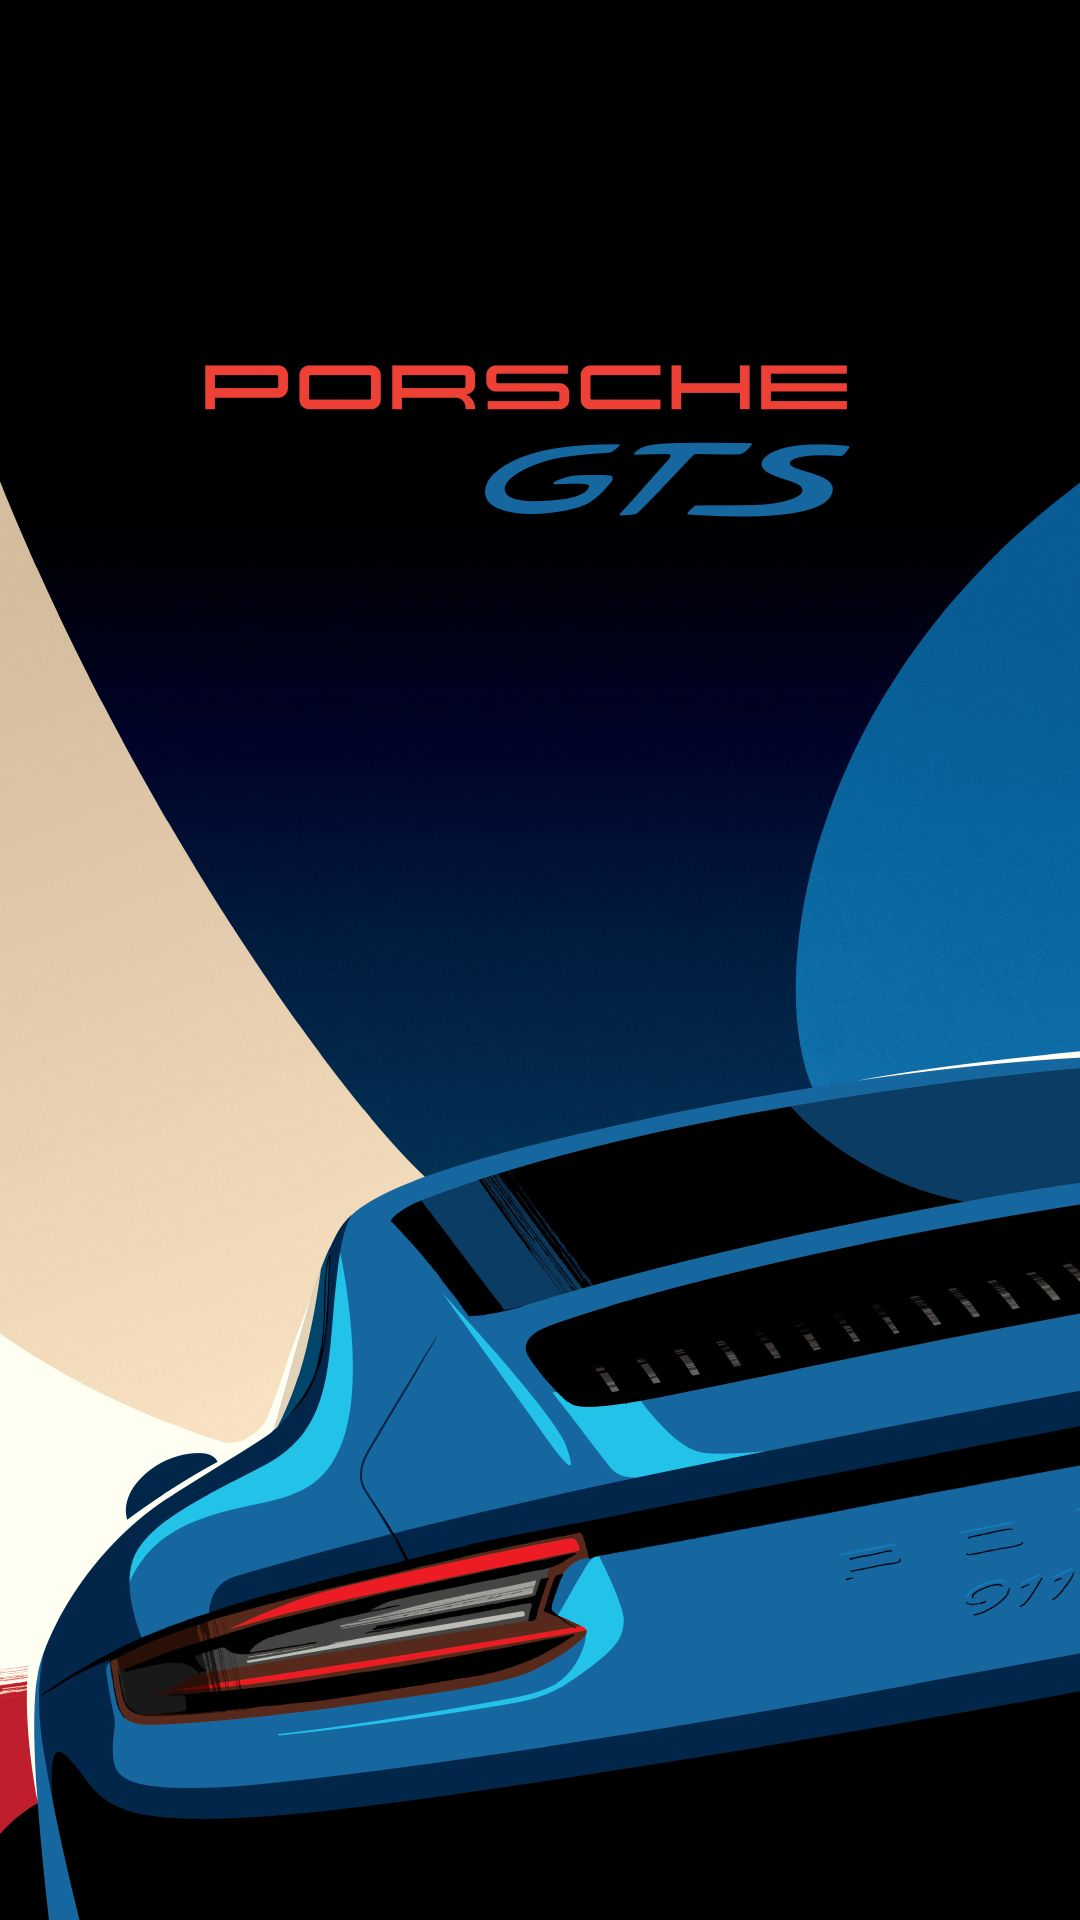 Check It Out Porsche Goes Retro On Social Strategy In 2020 Porsche Gts Porsche 911 Gts Retro Cars